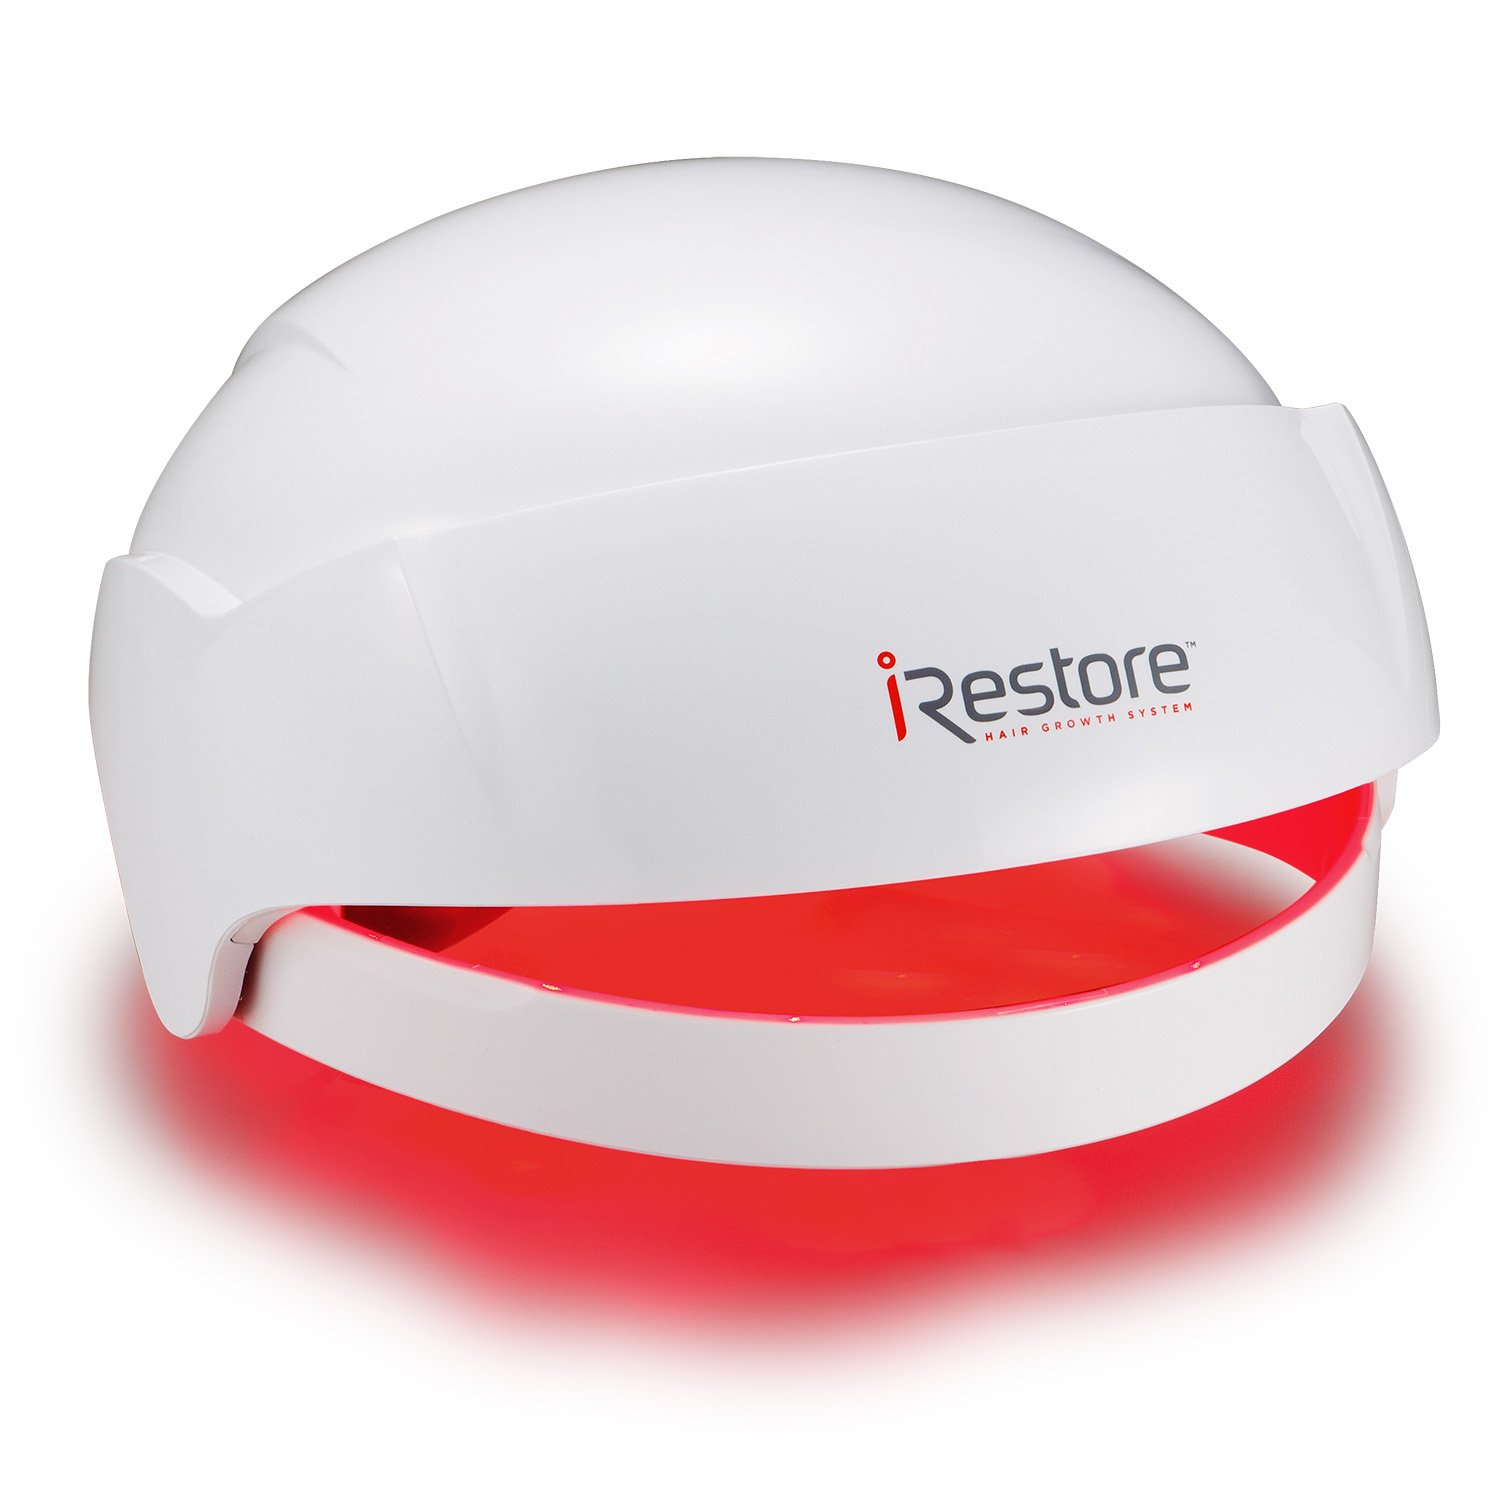 iRestore Laser Hair Growth System - FDA Cleared Hair Loss Treatment for Men and Women with Balding, Thinning Hair - Laser Helmet Uses Regrowth Light Therapy Like Laser Caps, Hats, Combs and Brushes